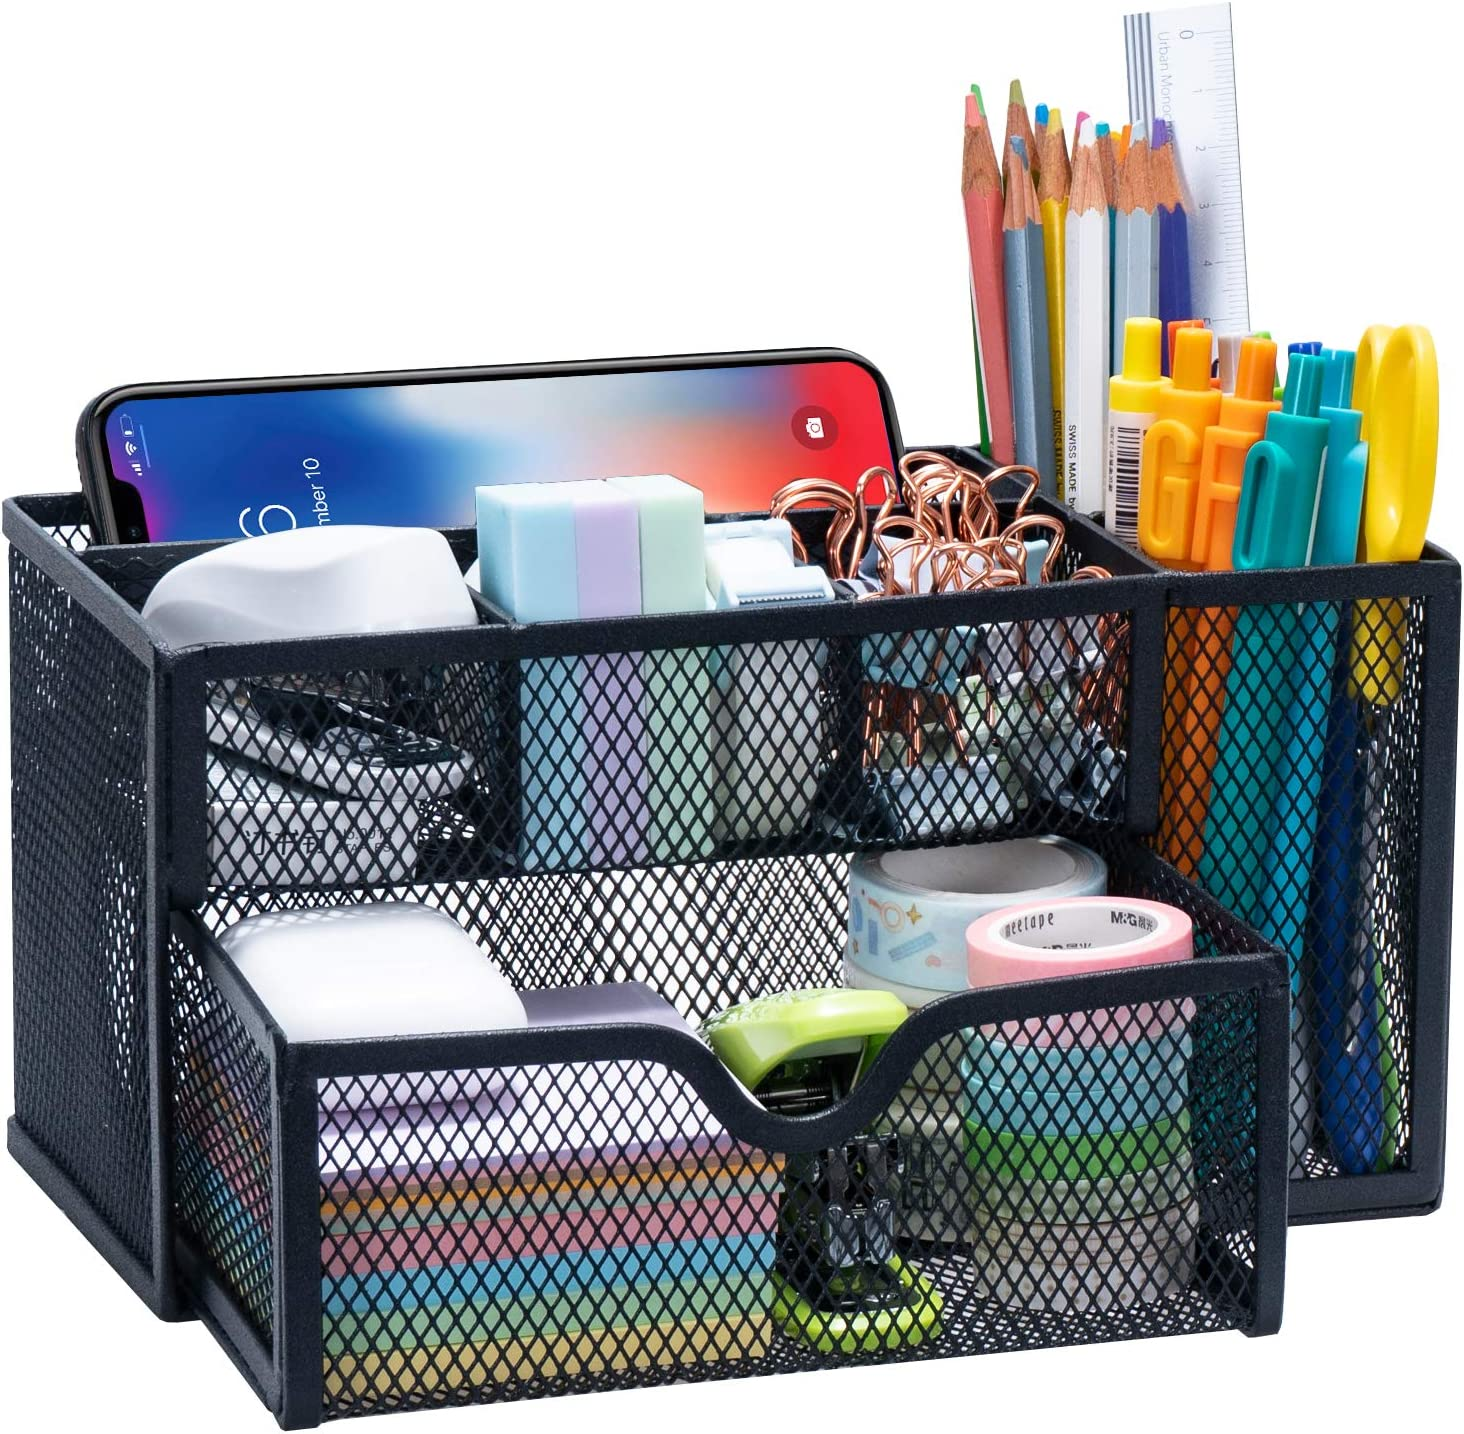 ARCOBIS Black Mesh Desk Organizer Office Supplies Multi-Functional Desktop Caddy Pen Holder Stationery with 6 Compartments and 1 Large Storage Drawer for Office, Home, School, Classroom